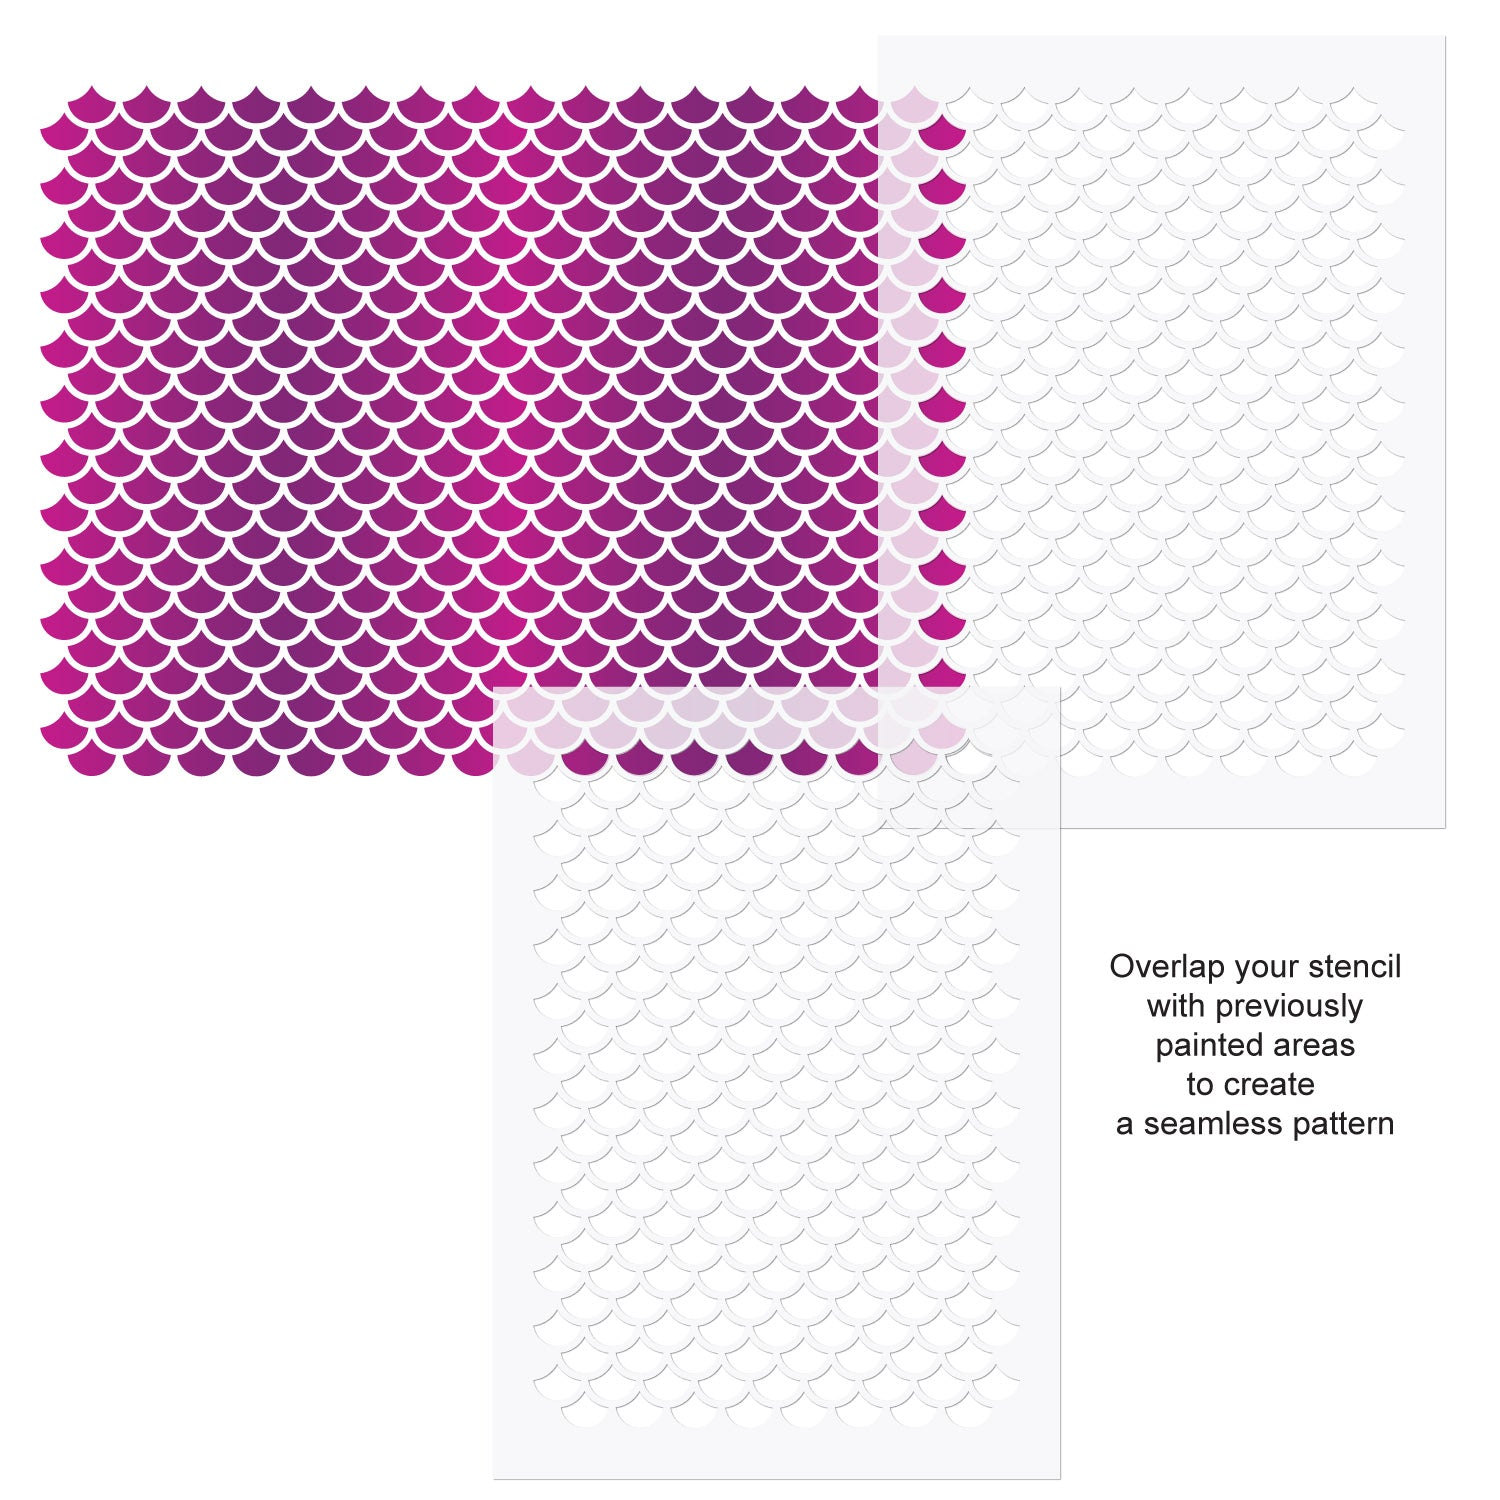 CraftStar Mermaid Scales Wall Stencil Use Guide